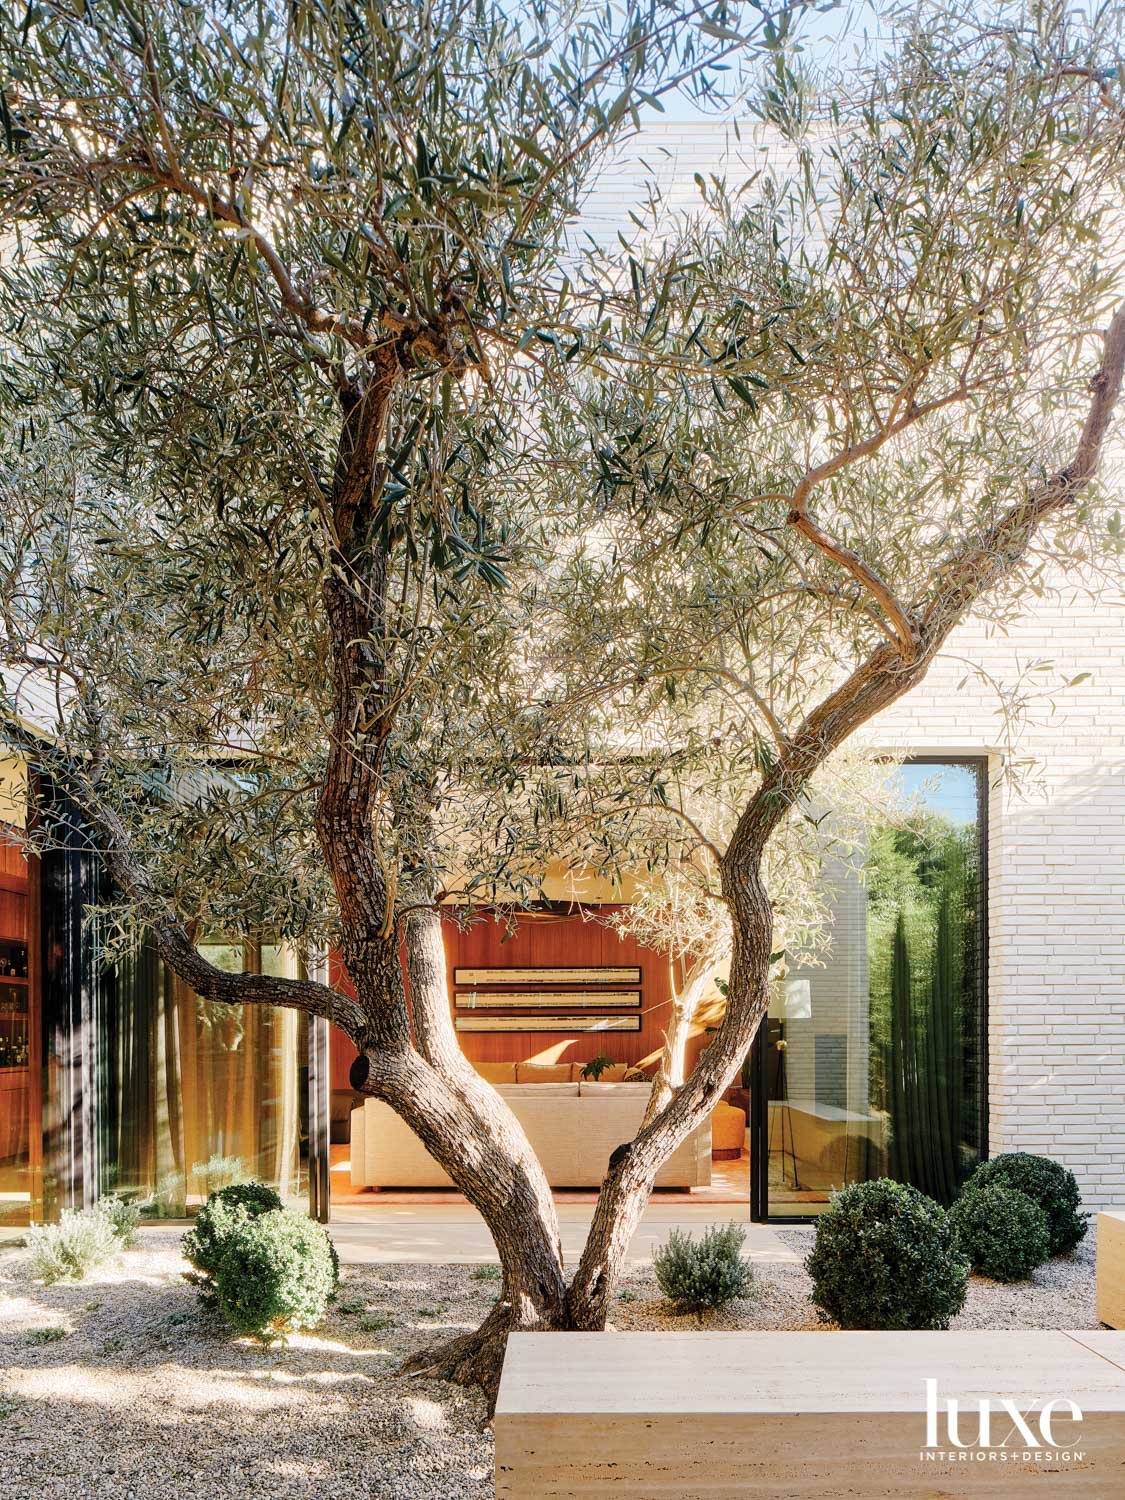 Interior courtyard of home with...